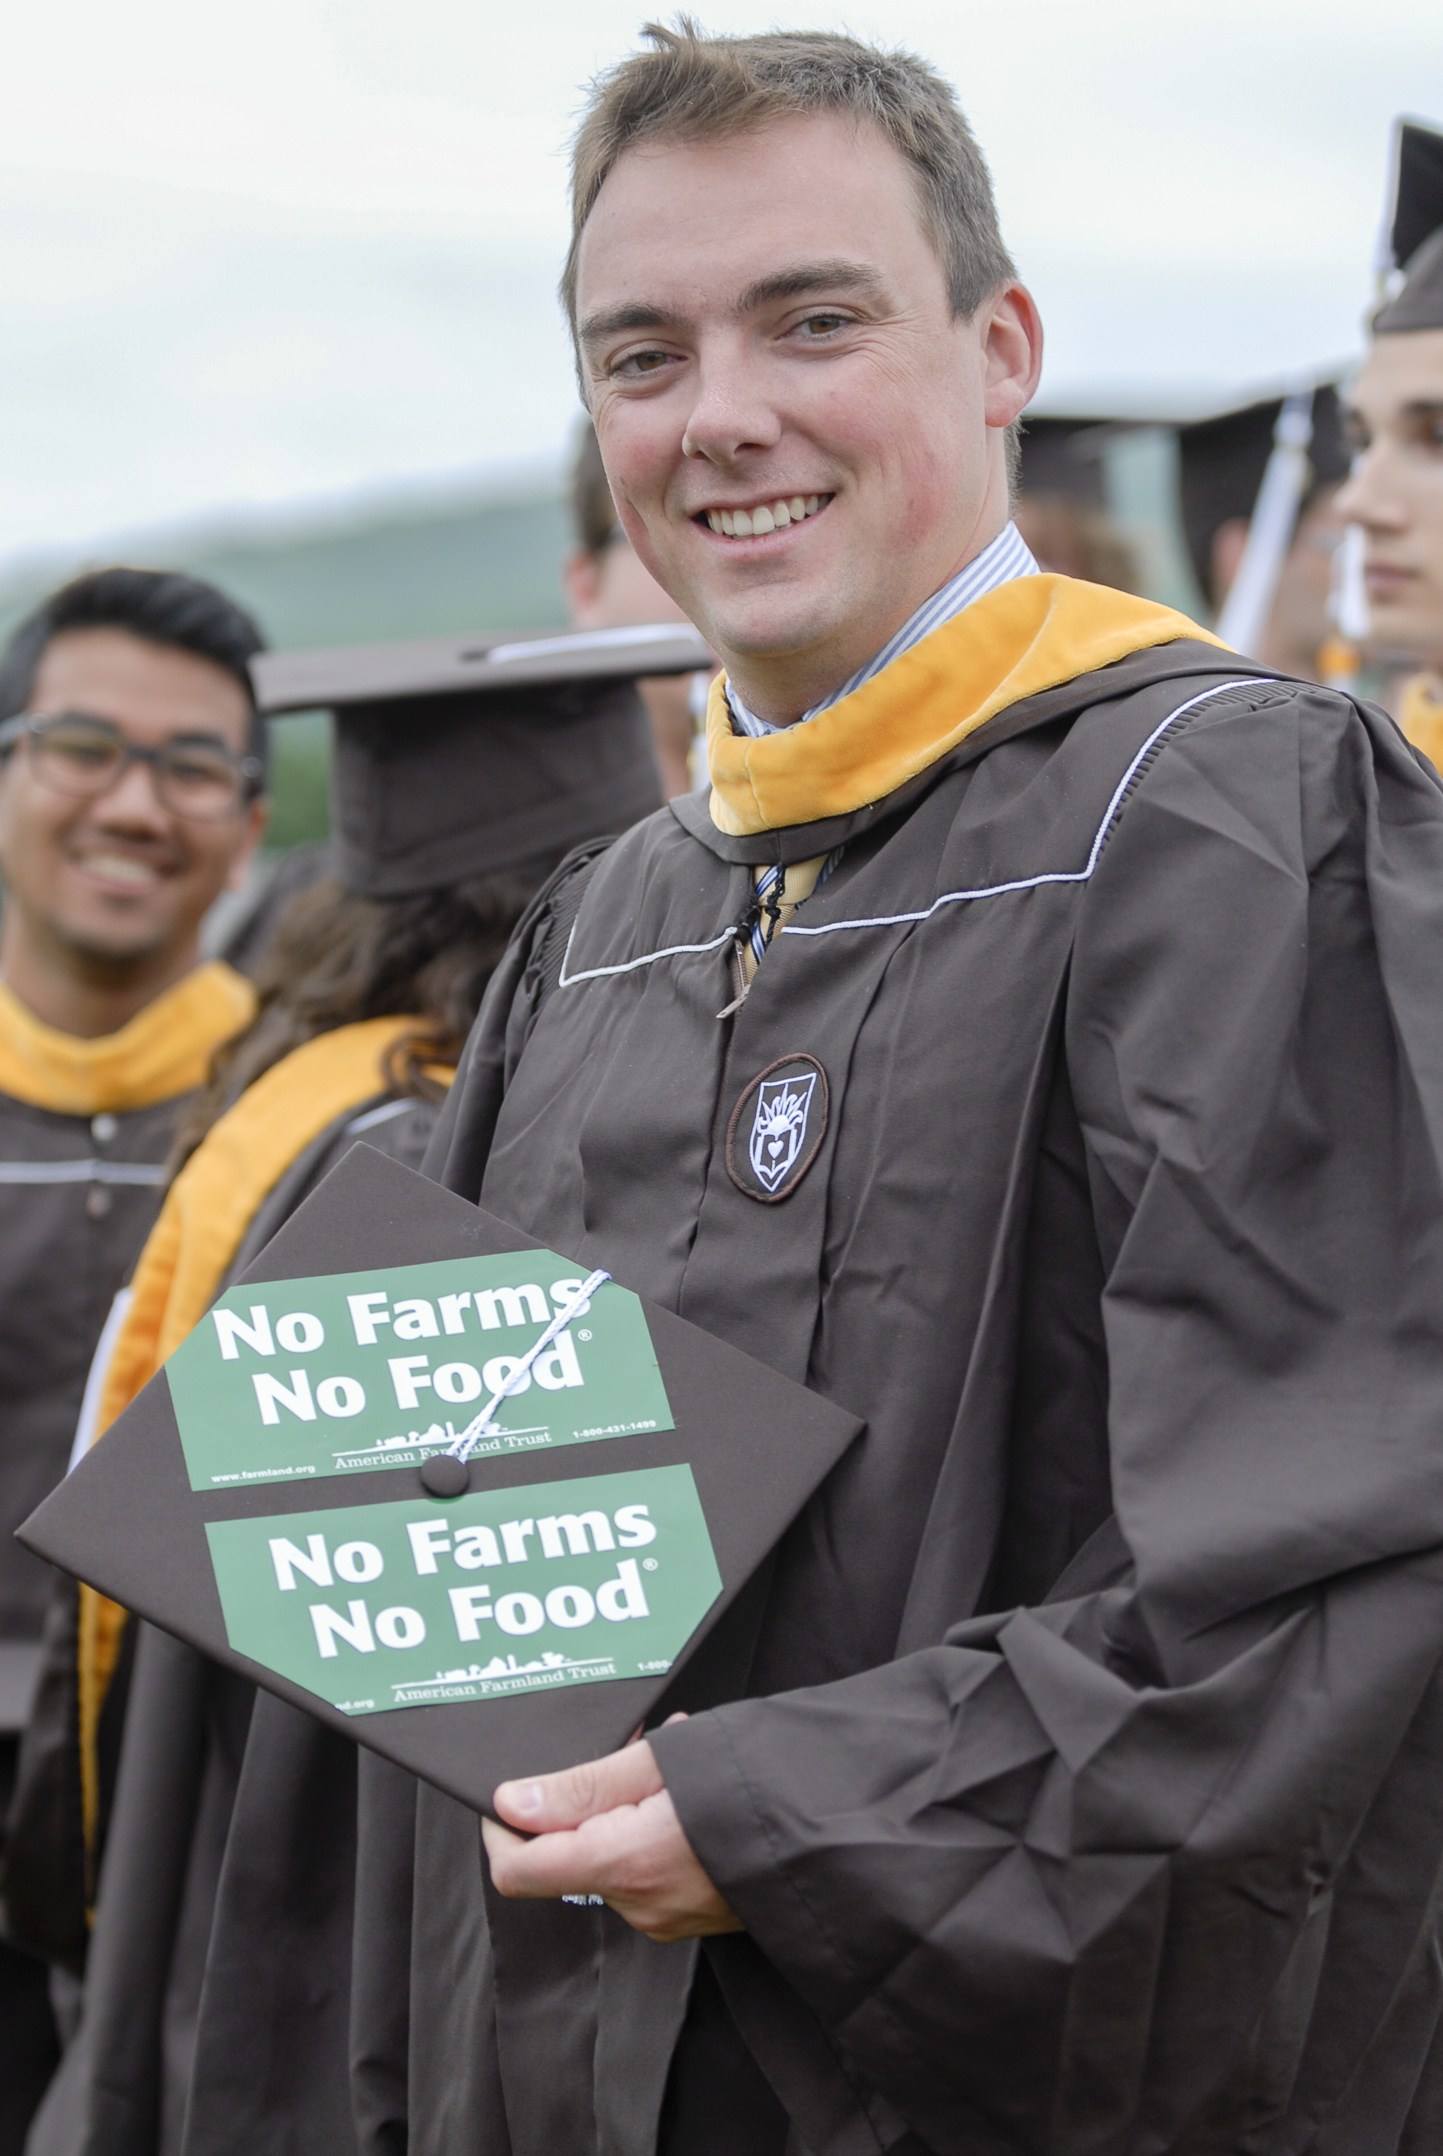 Kenneth Kinsman, '17, holds his graduation cap Monday, May 22, 2017, outside Goodman Stadium. A mechanical engineering graduate, Kinsman's family owns a farm. (Roshan Giyanani/B&W Staff)